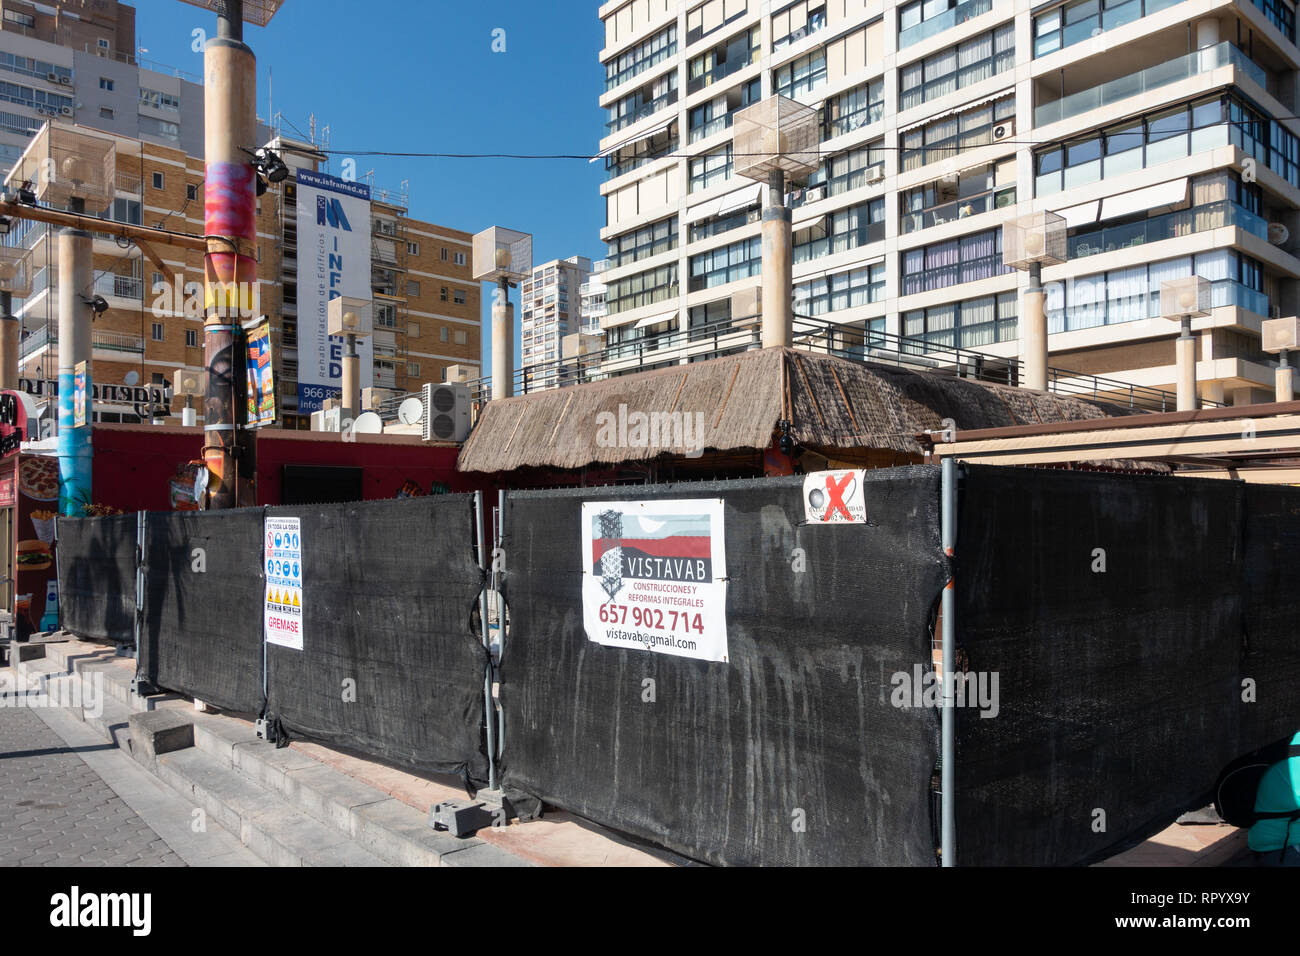 Benidorm, Costa Blanca, Spain, 23rd February 2019. The seafront Tiki Beach Bar on Levante beach, Benidorm is finally closed after much controversy and complaints from local residents. There are no reports as to wether this is a complete closure or just a refurbishment .  Credit: Mick Flynn/Alamy Live News Stock Photo